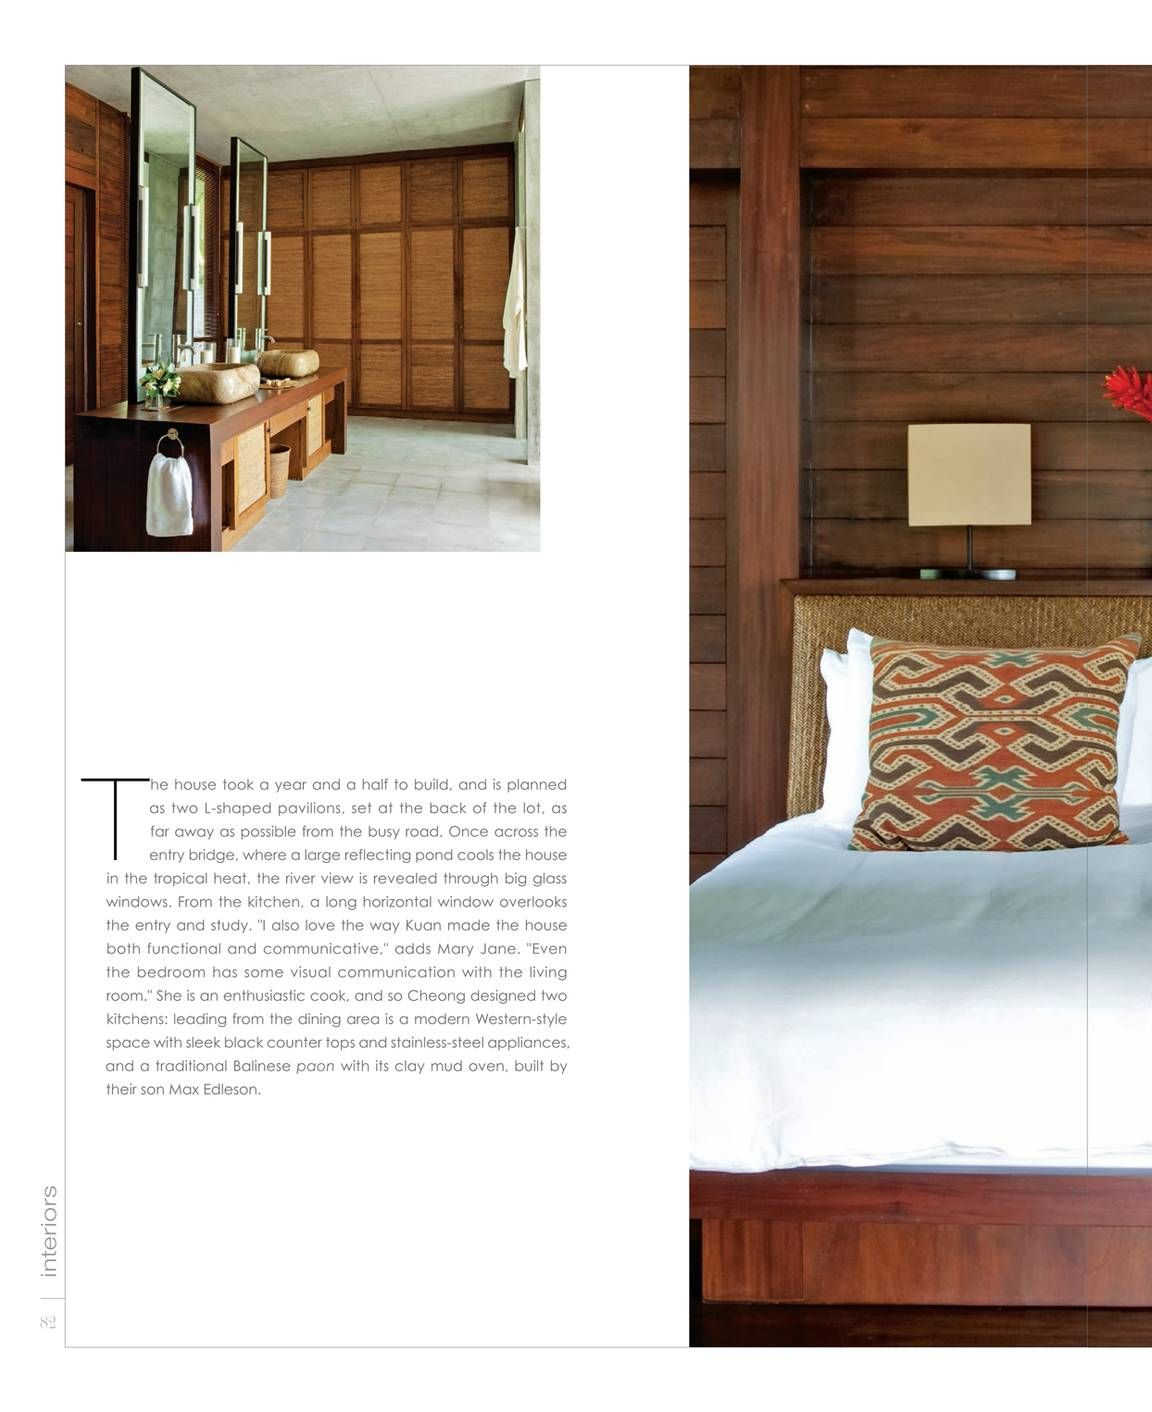 Residential Interior Design: Interiors Is The Only Magazine Specifically Targeted To